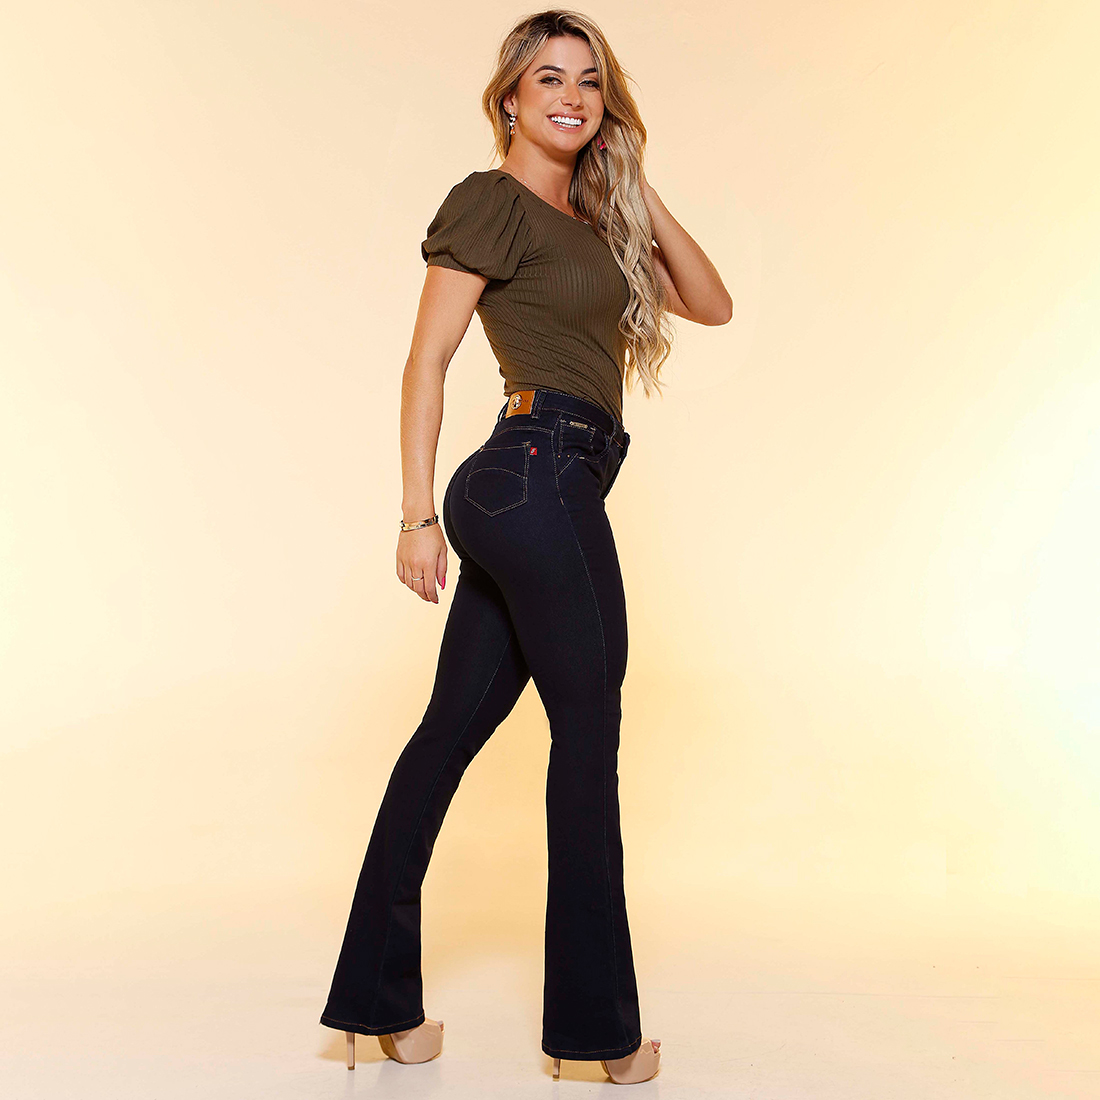 04569-FLARE-JEANS-1